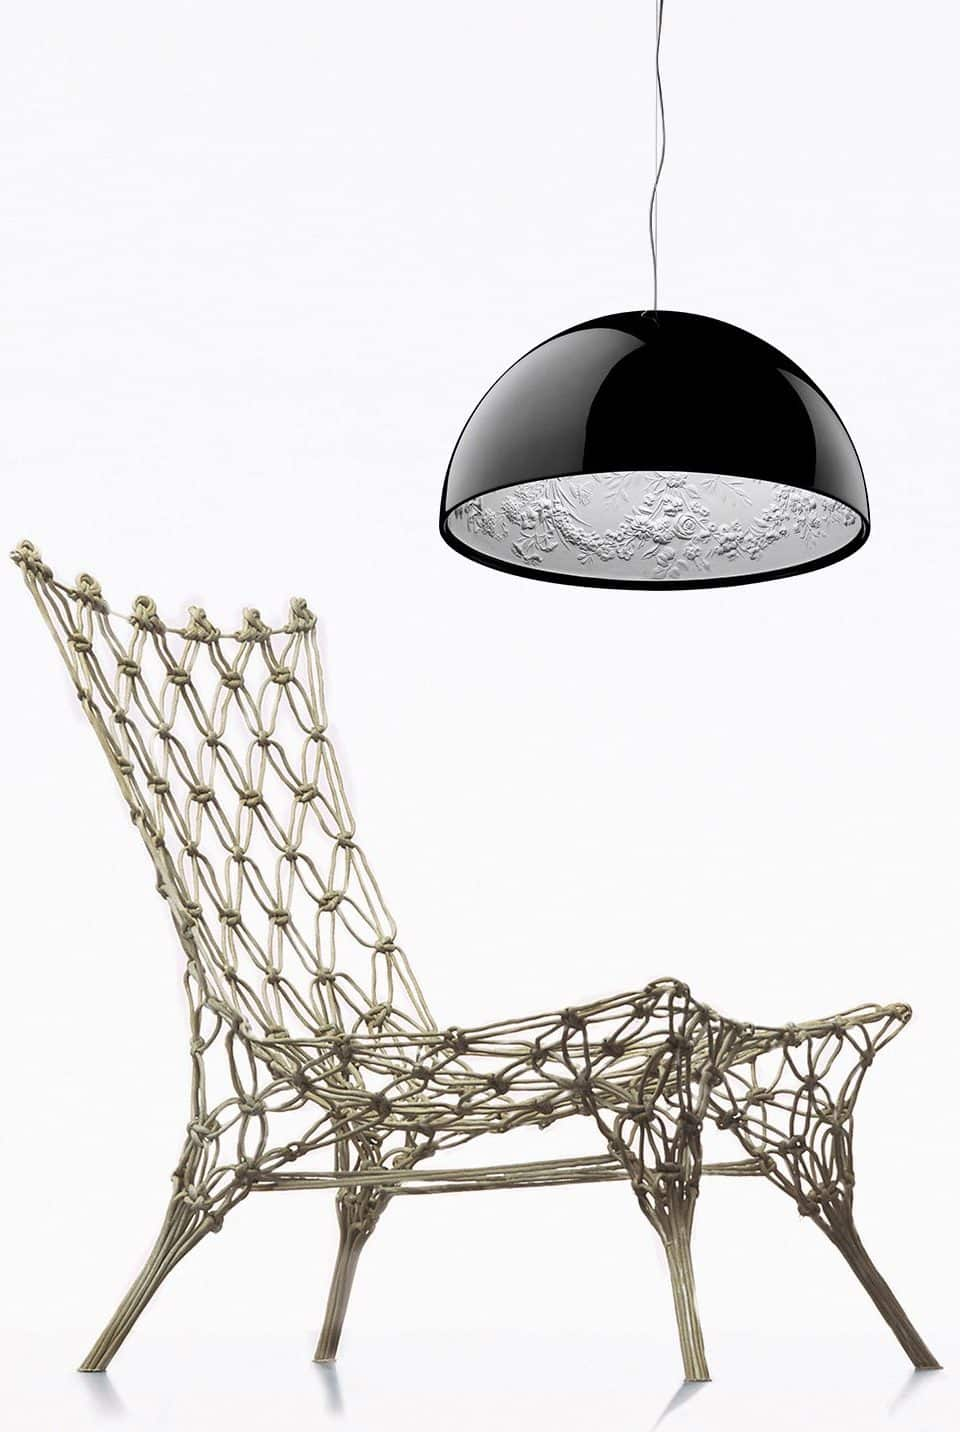 Marcel Wanders Thinks Design Should Be Playful, Romantic and Surreal